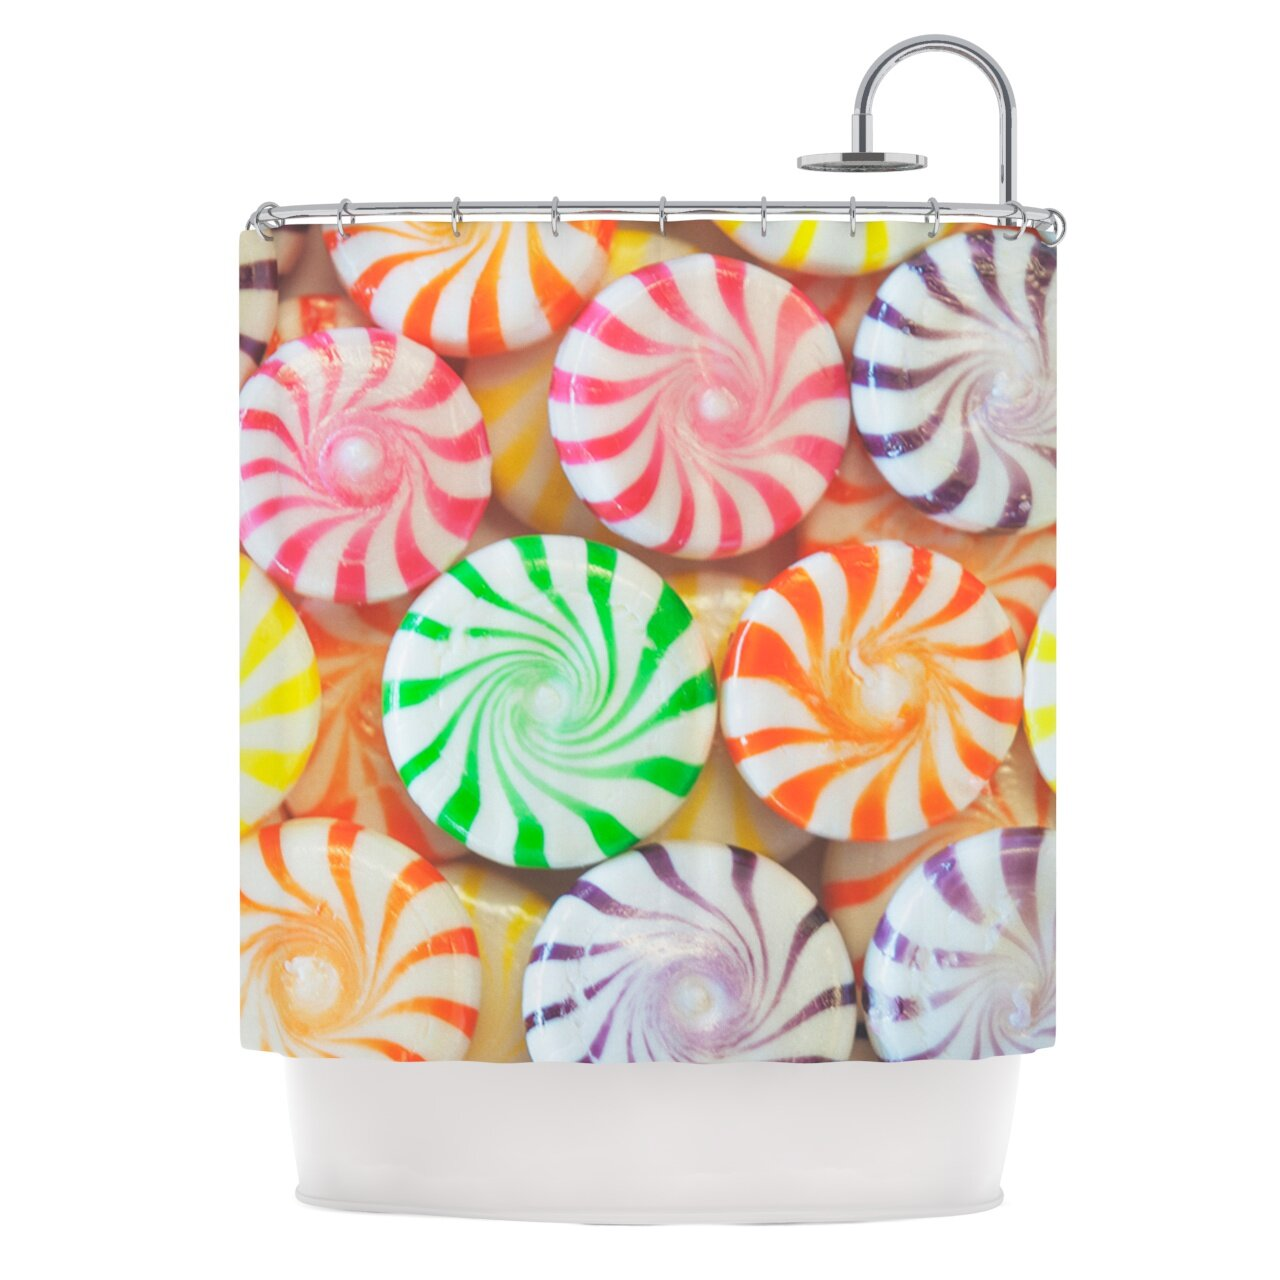 KESS InHouse I Want Candy Shower Curtain